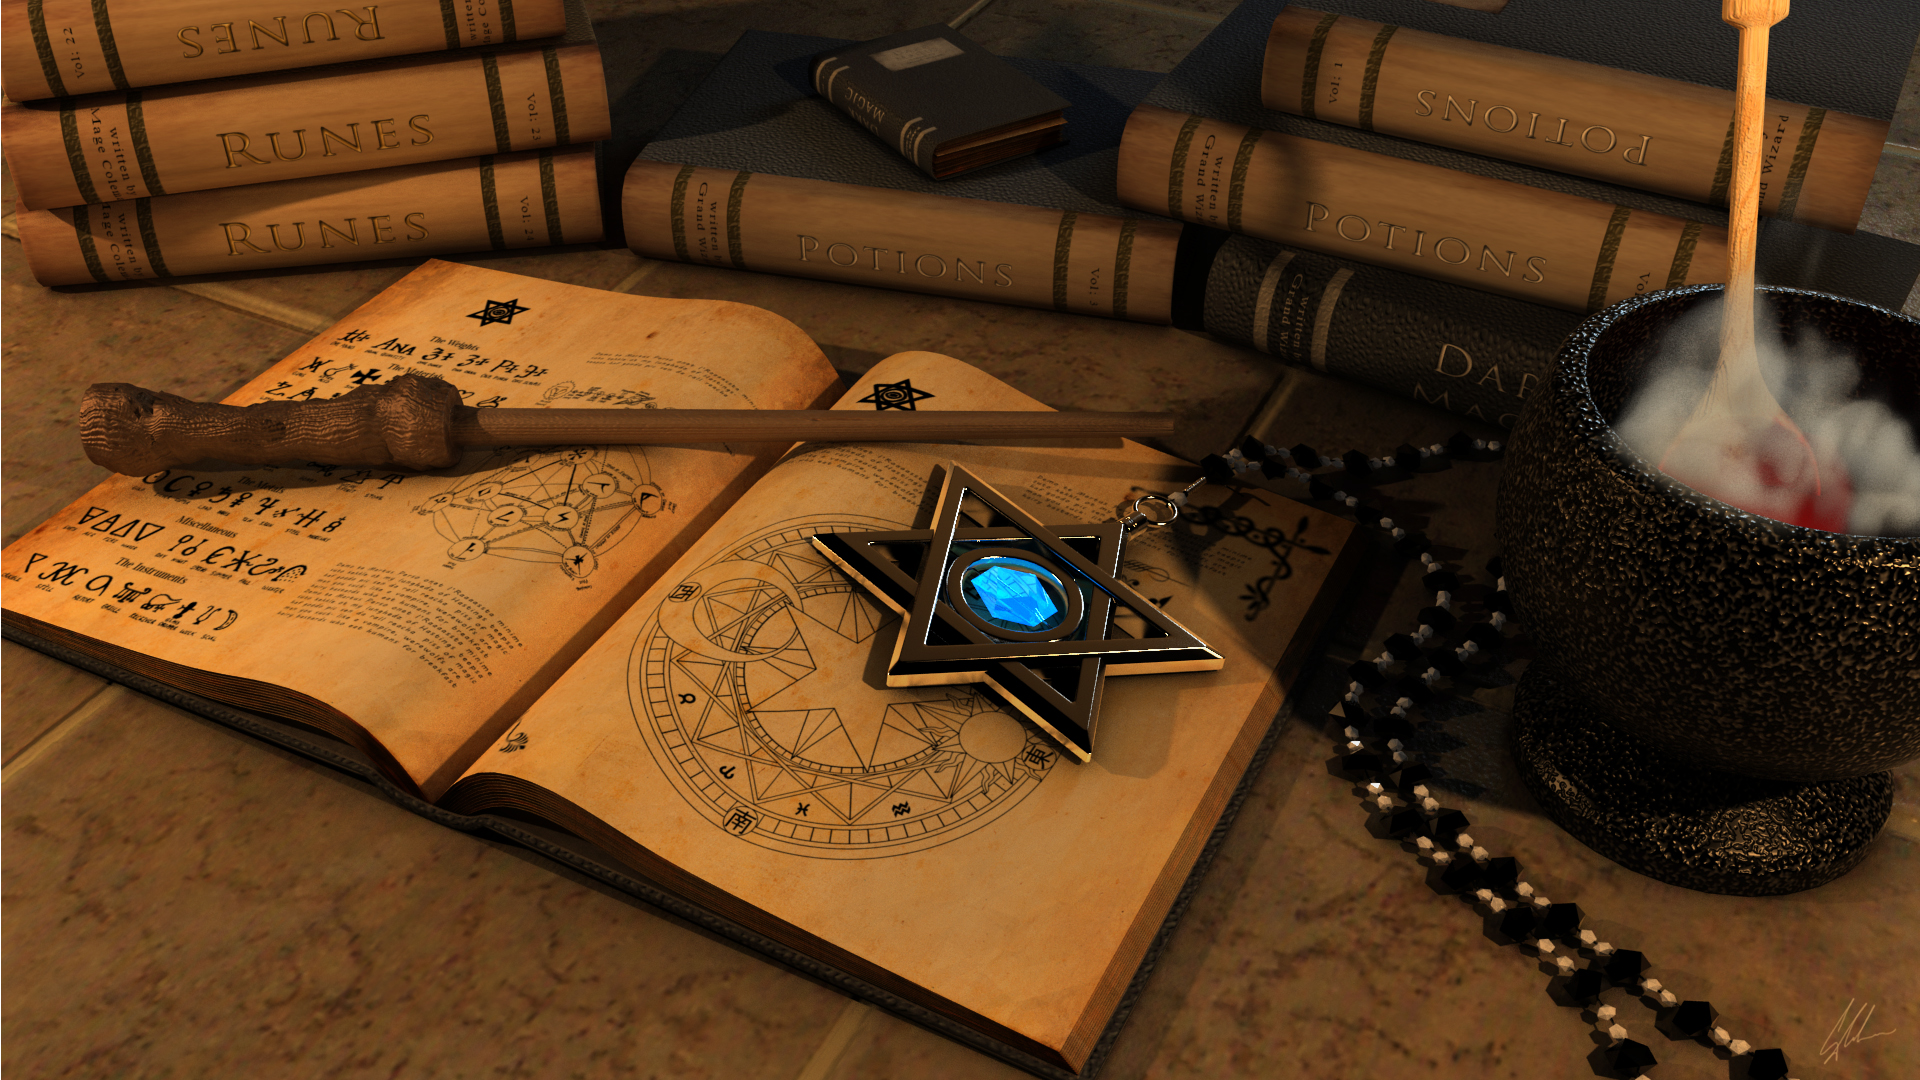 SpellBook by GarryColeman 1920x1080